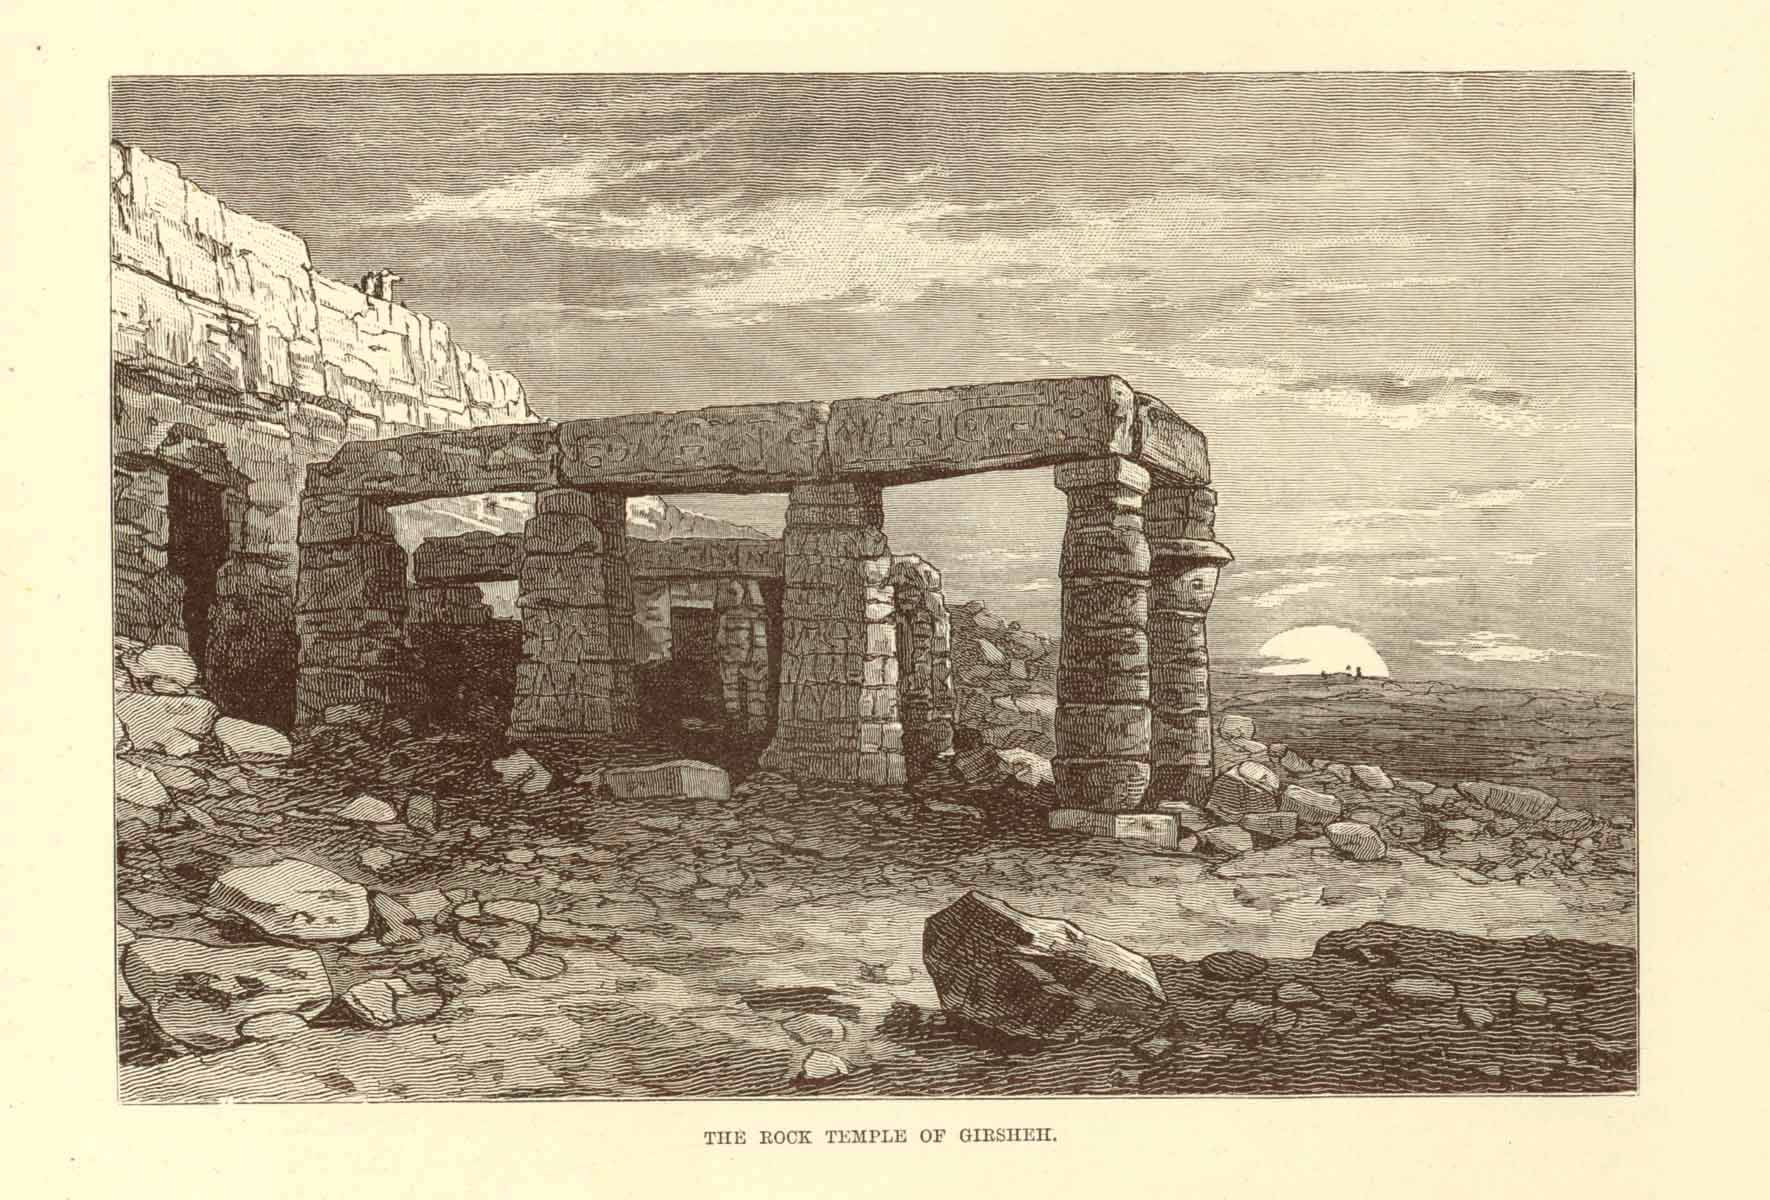 """The Rock Temple of Girsheh""  Wood engraving 1895 on a page of text about Egypt that continues on the reverse side where there is an image of Queen Nefertari"""